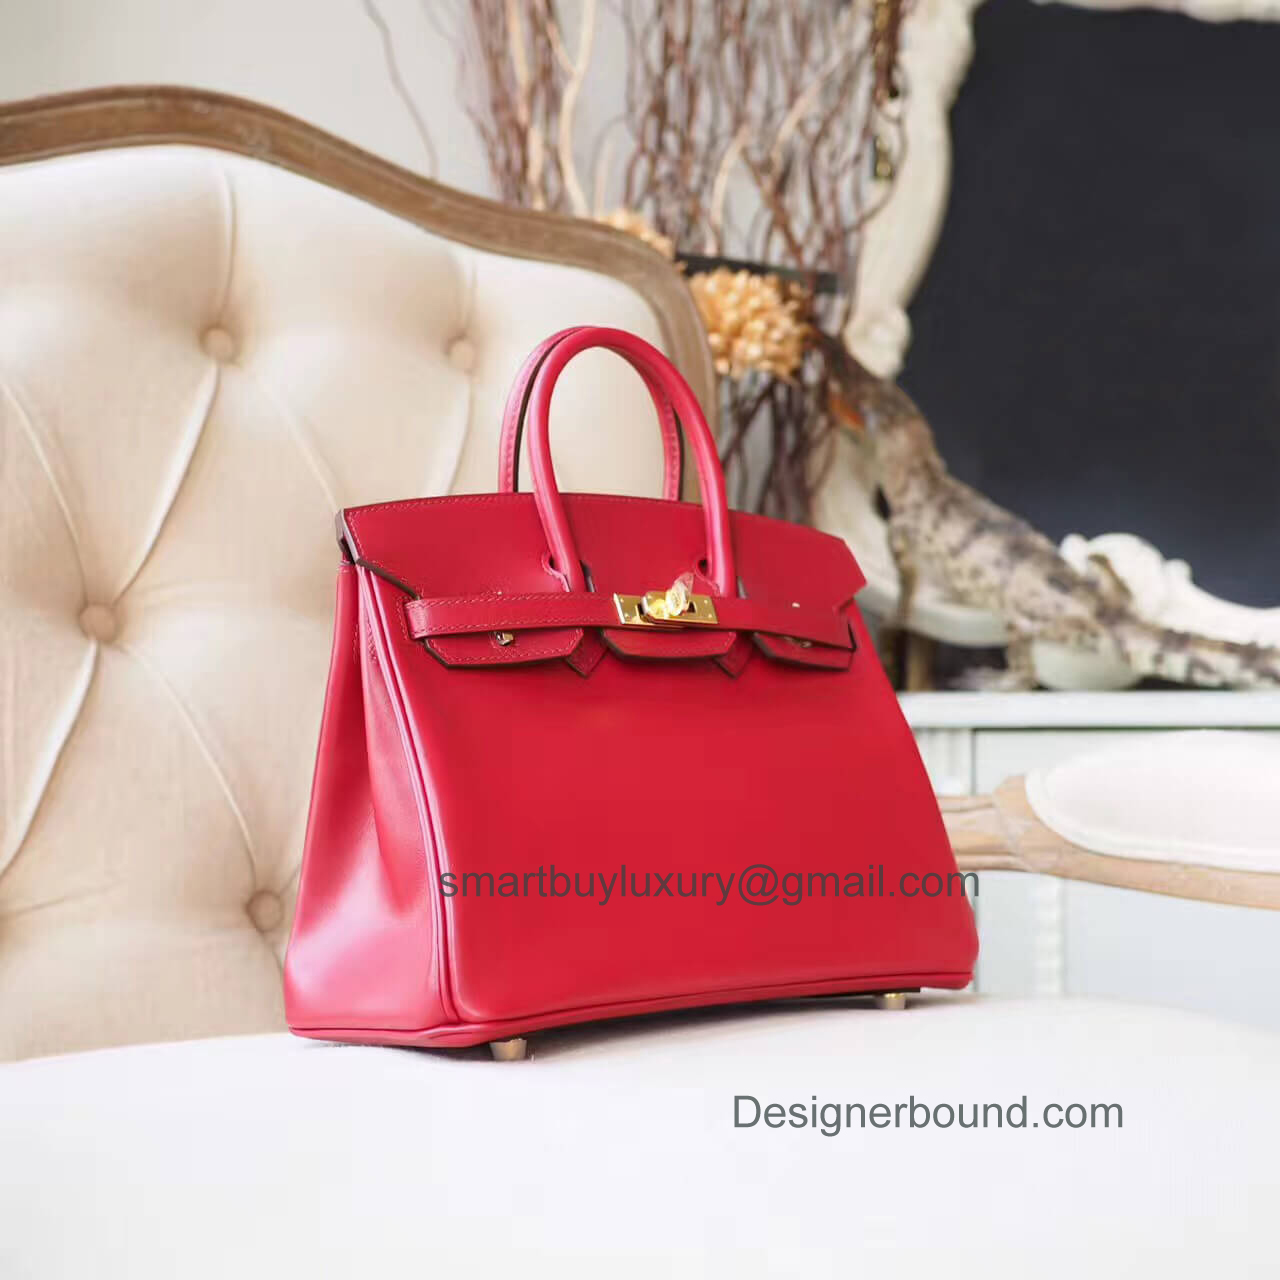 Hermes Birkin 25 Bag in b5 Ruby Tadelakt GHW